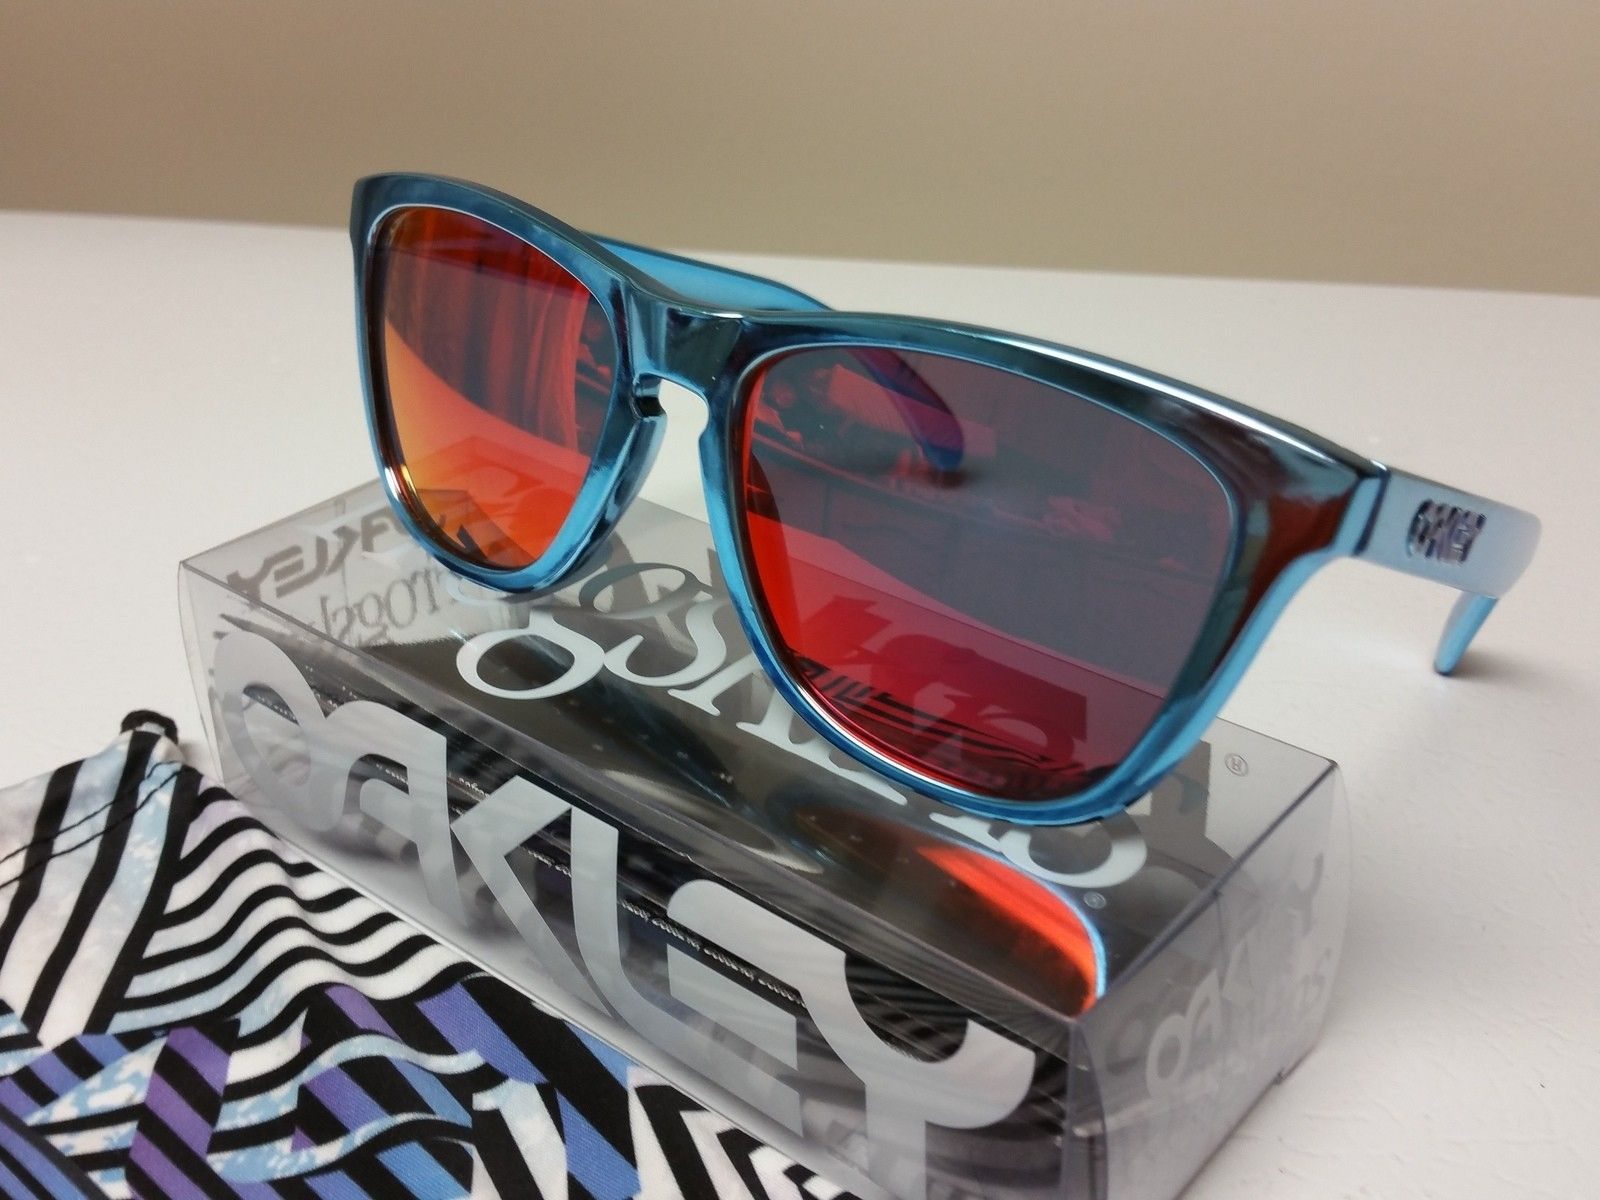 7a4d024209 Shaun White X Oakley Frogskins Sunglasses « Heritage Malta